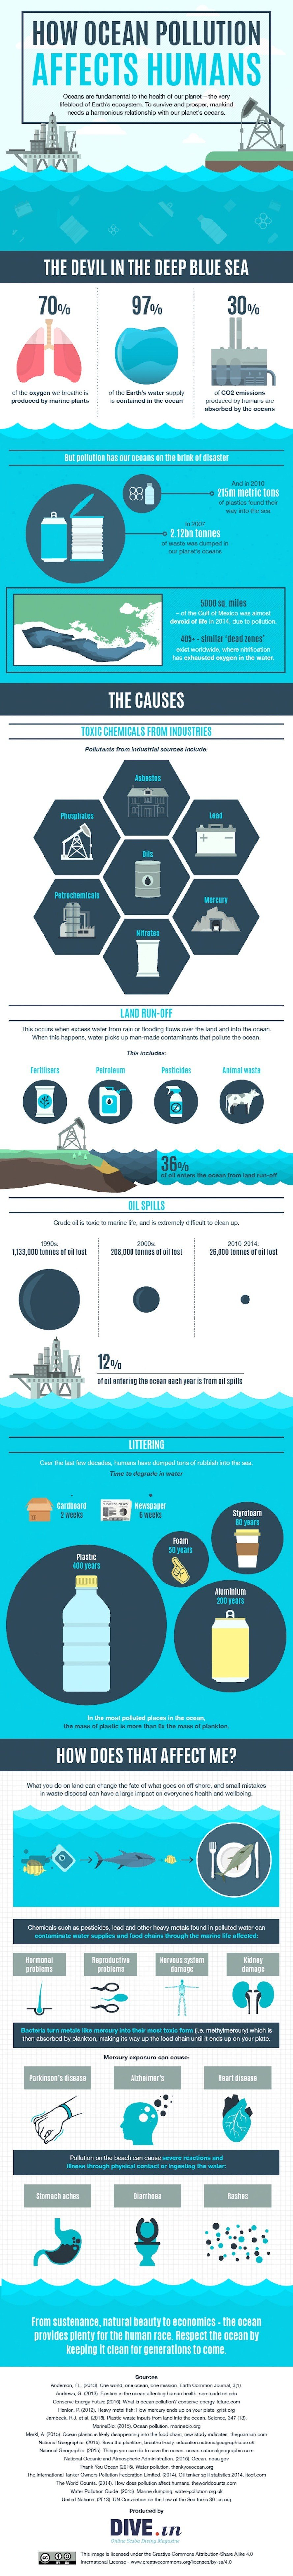 DIVE, infographic, reader submitted content, ocean pollution, water pollution, oceans, pollution